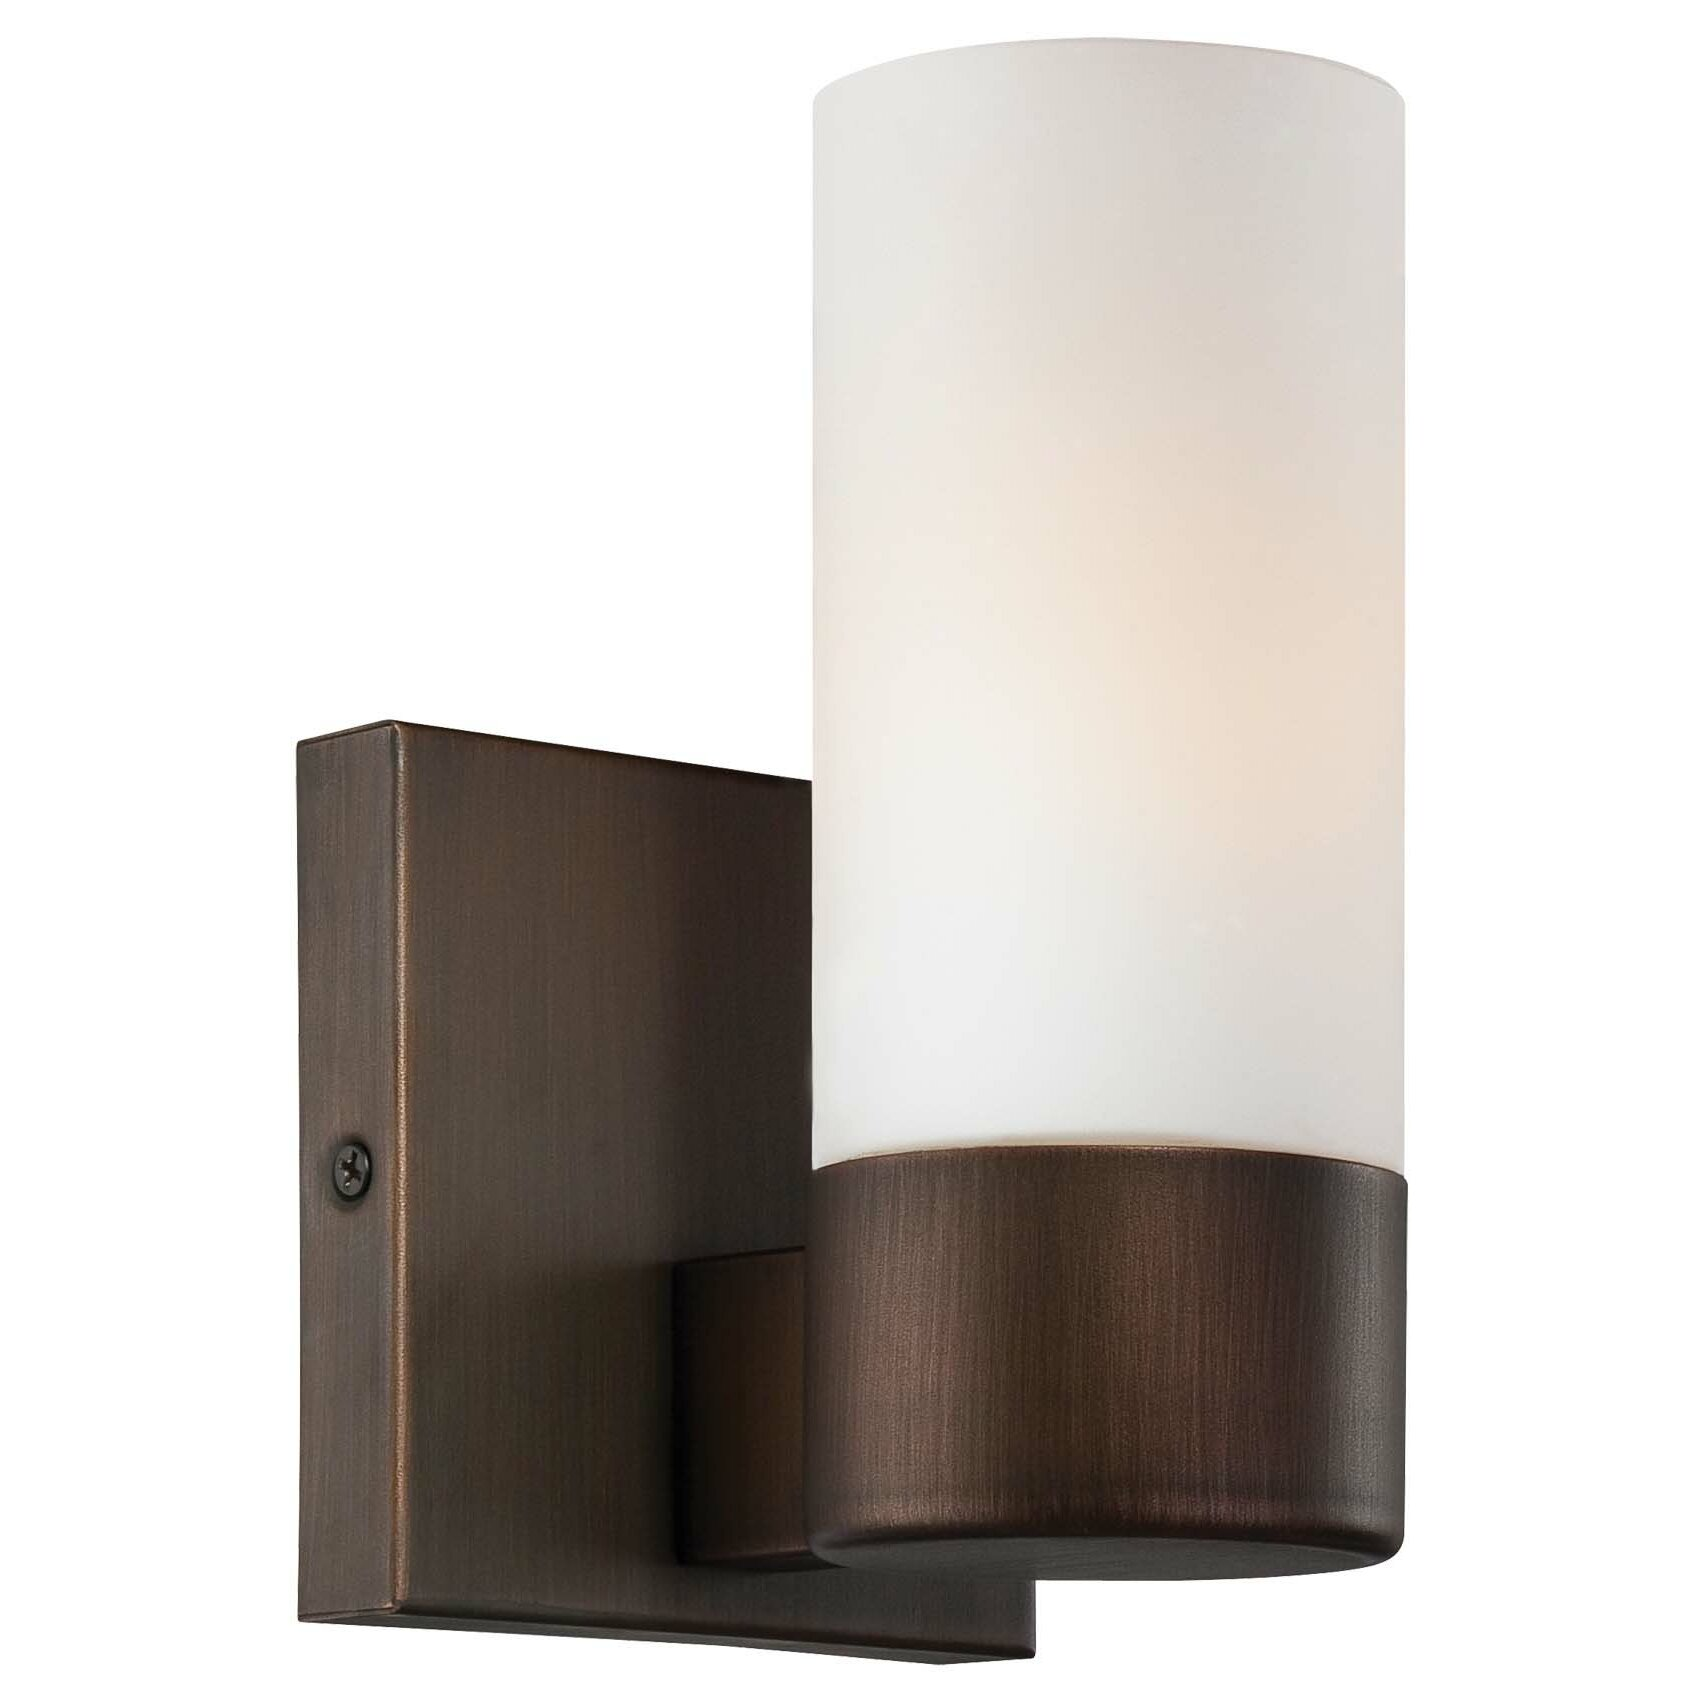 Wall Sconces Cooper Lighting : Minka Lavery 1 Light Wall Sconce & Reviews Wayfair